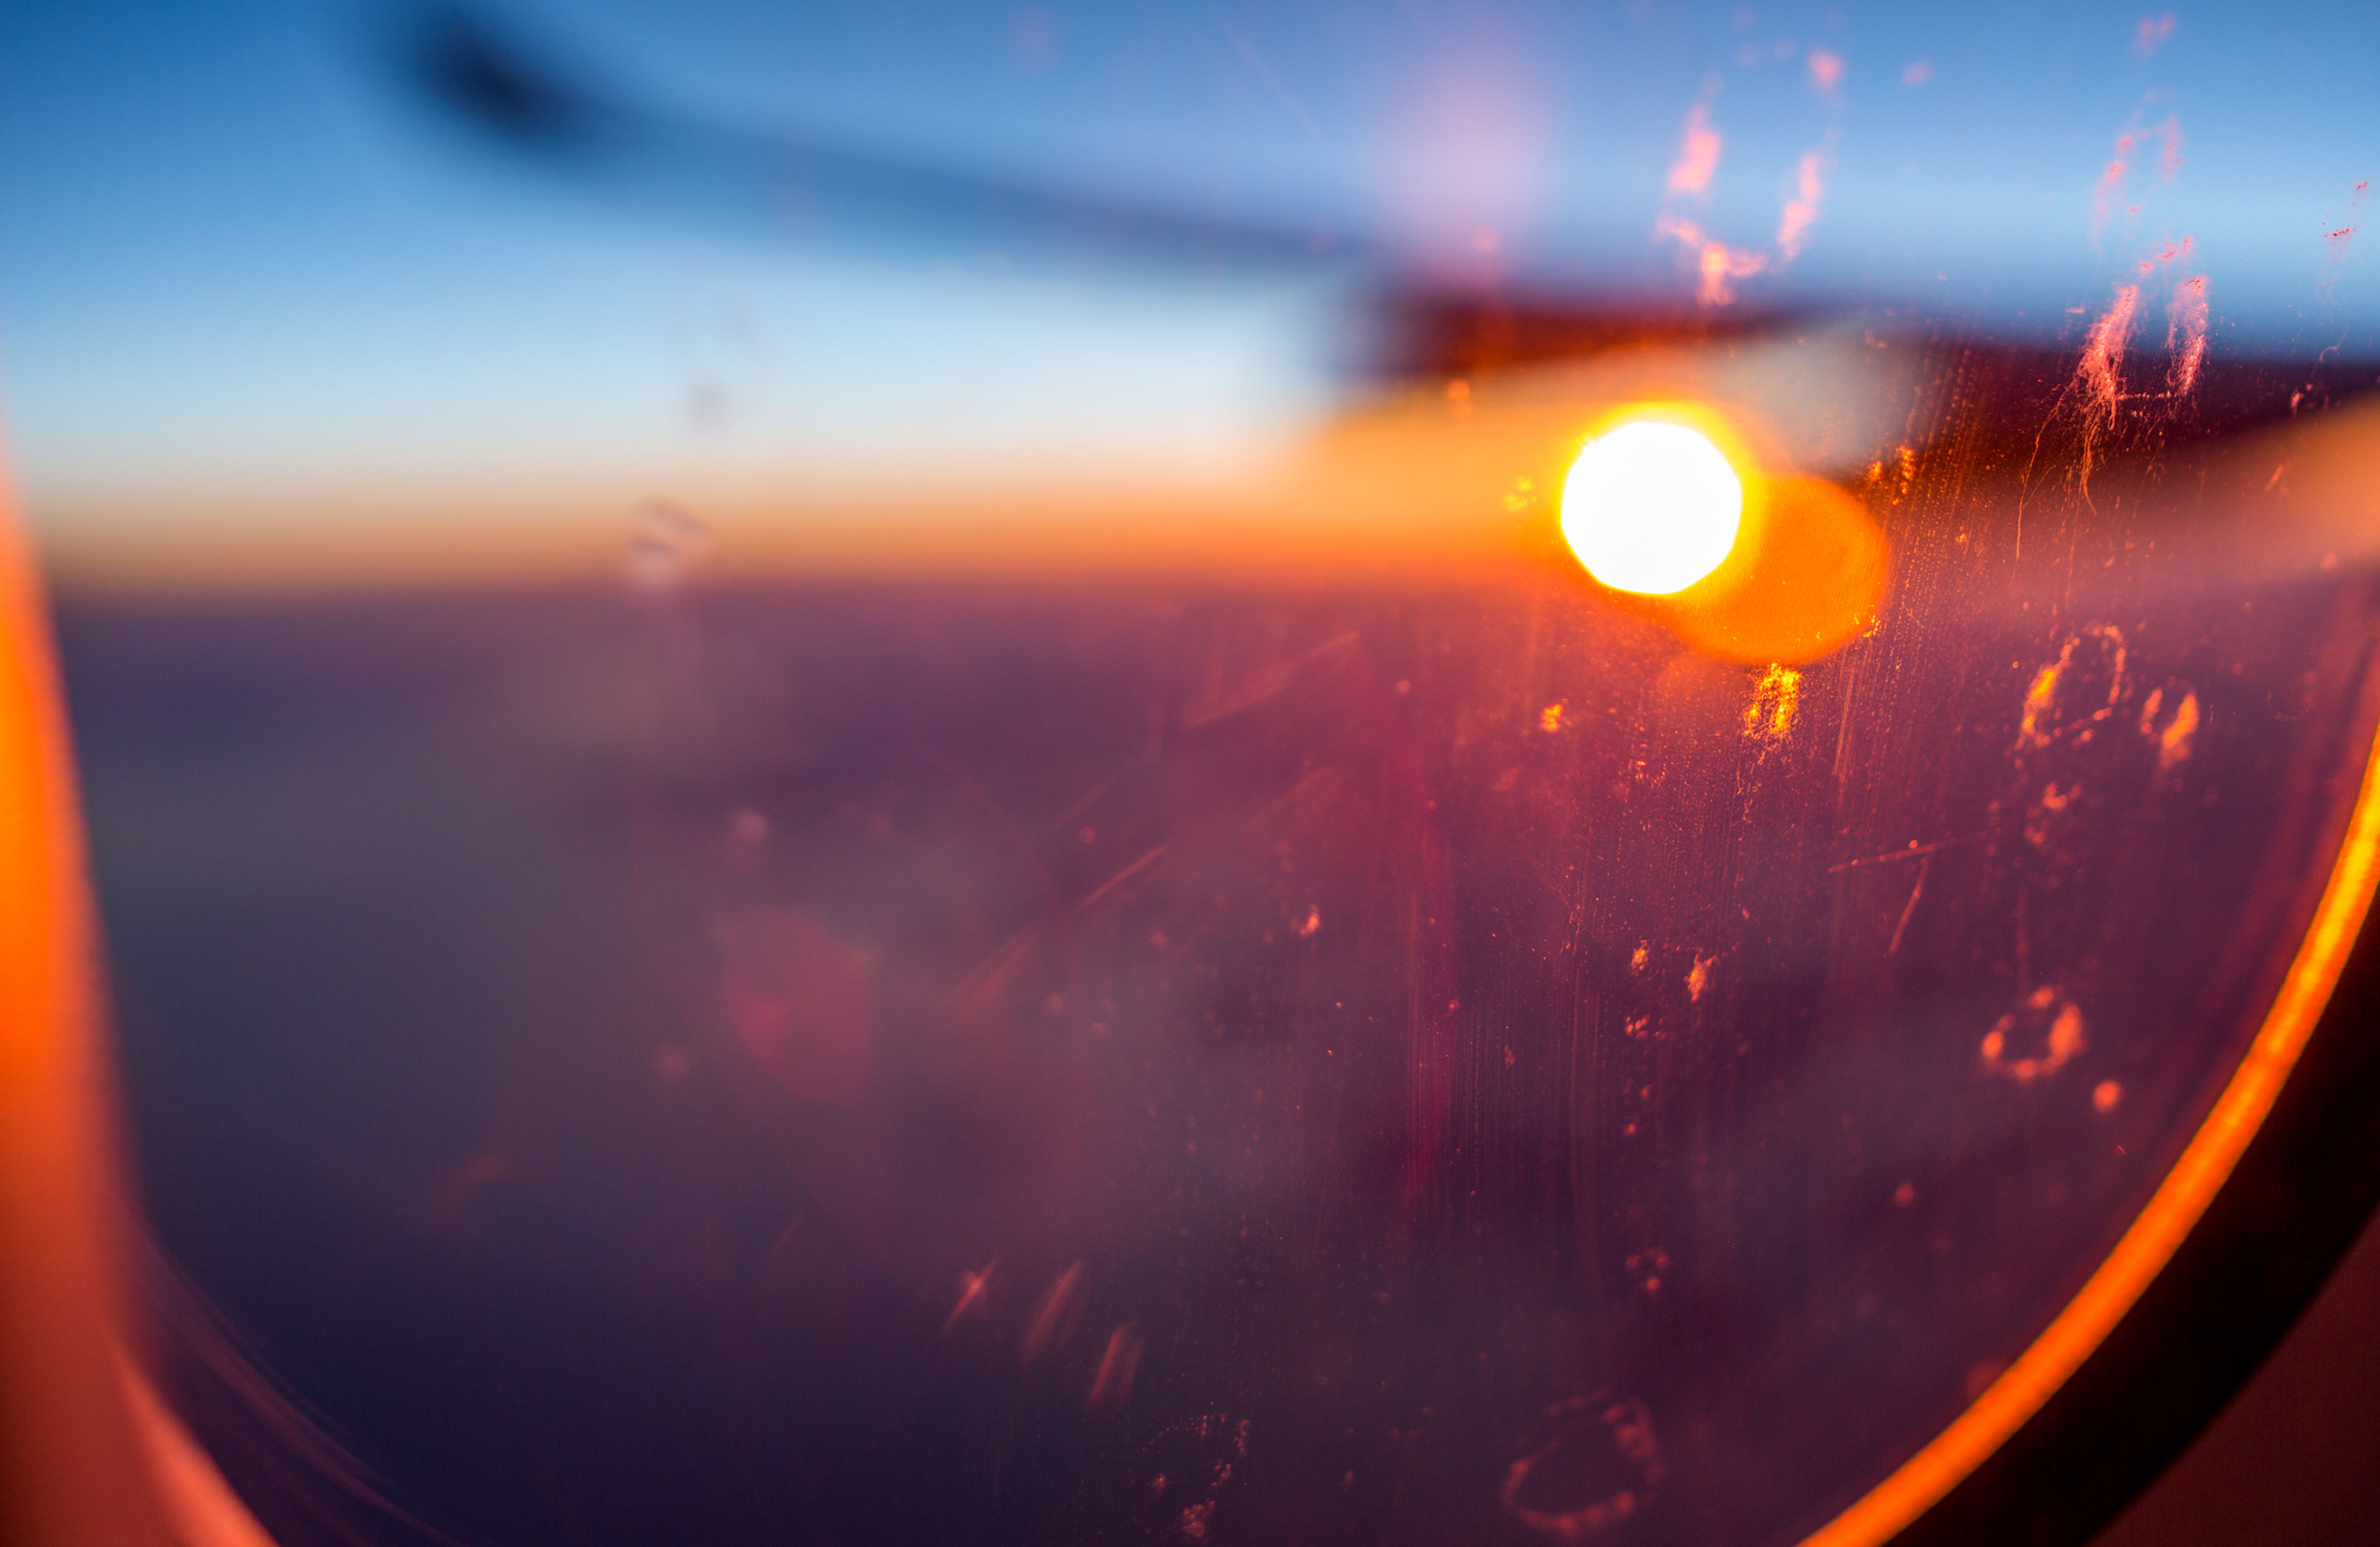 sunset, airplane, transportation, mode of transport, sun, travel, glass - material, transparent, air vehicle, window, scenics, landscape, beauty in nature, lens flare, nature, sky, flying, aerial view, cloudscape, orange color, focus on foreground, outdoors, cloud - sky, vibrant color, journey, tranquil scene